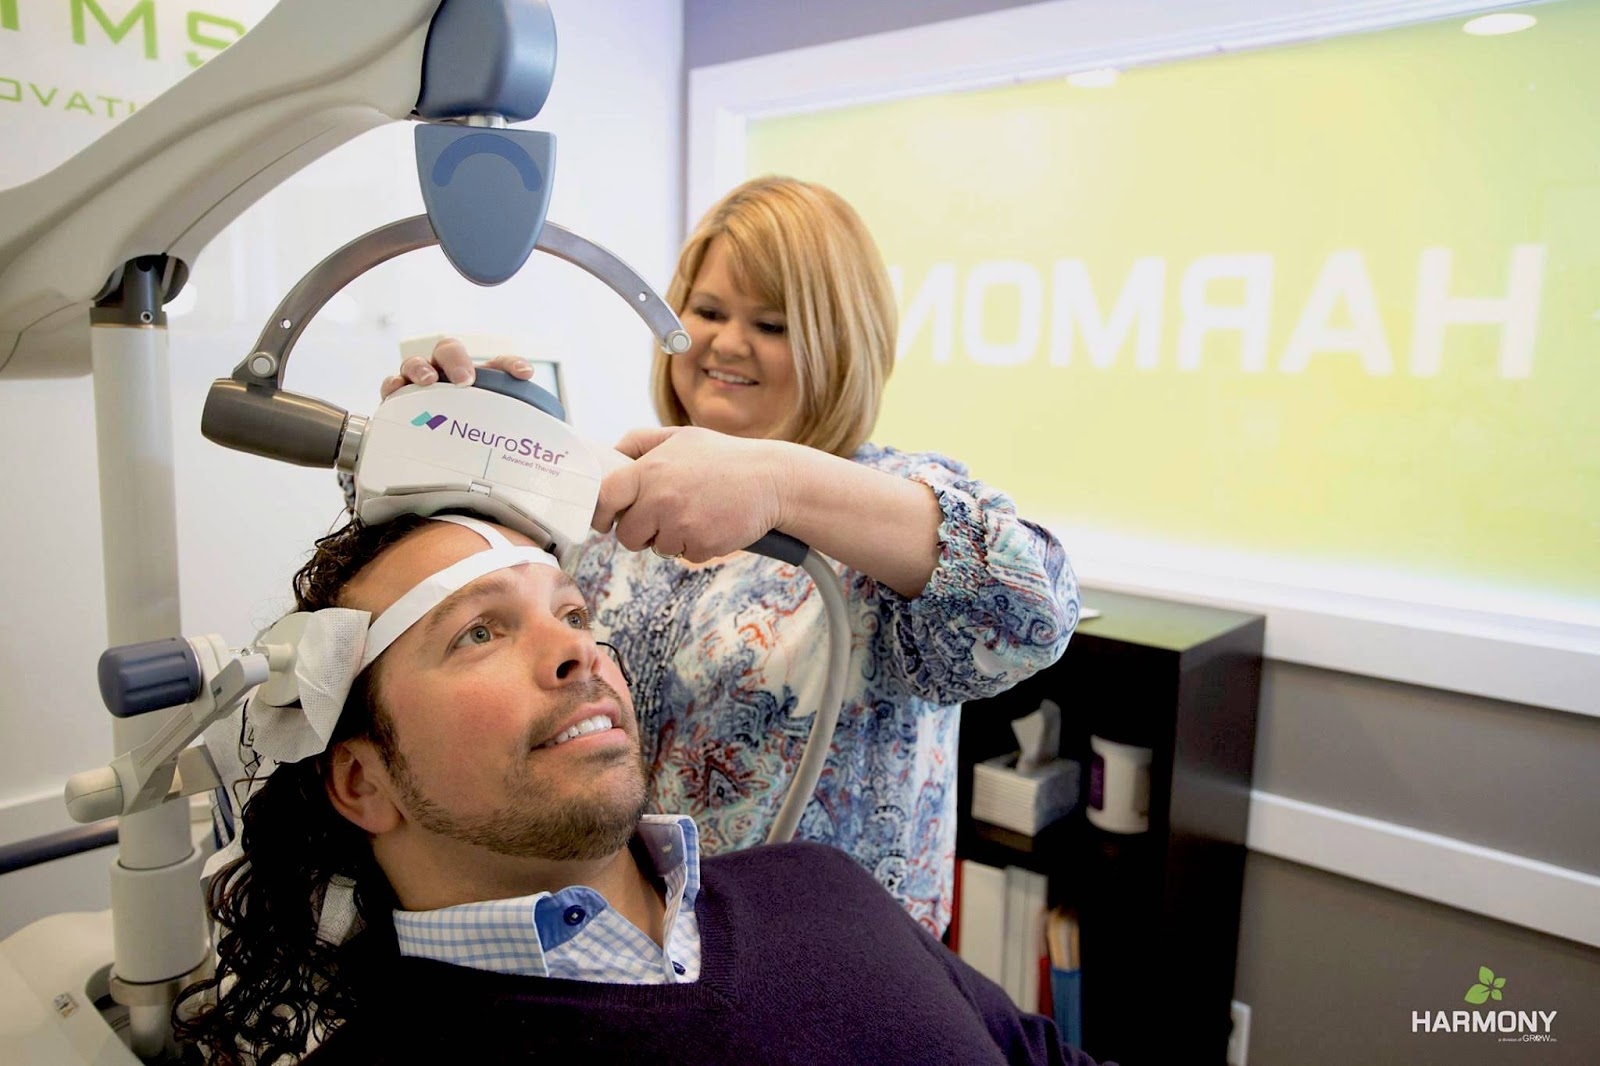 Patient receives TMS therapy with Neurostar machine.